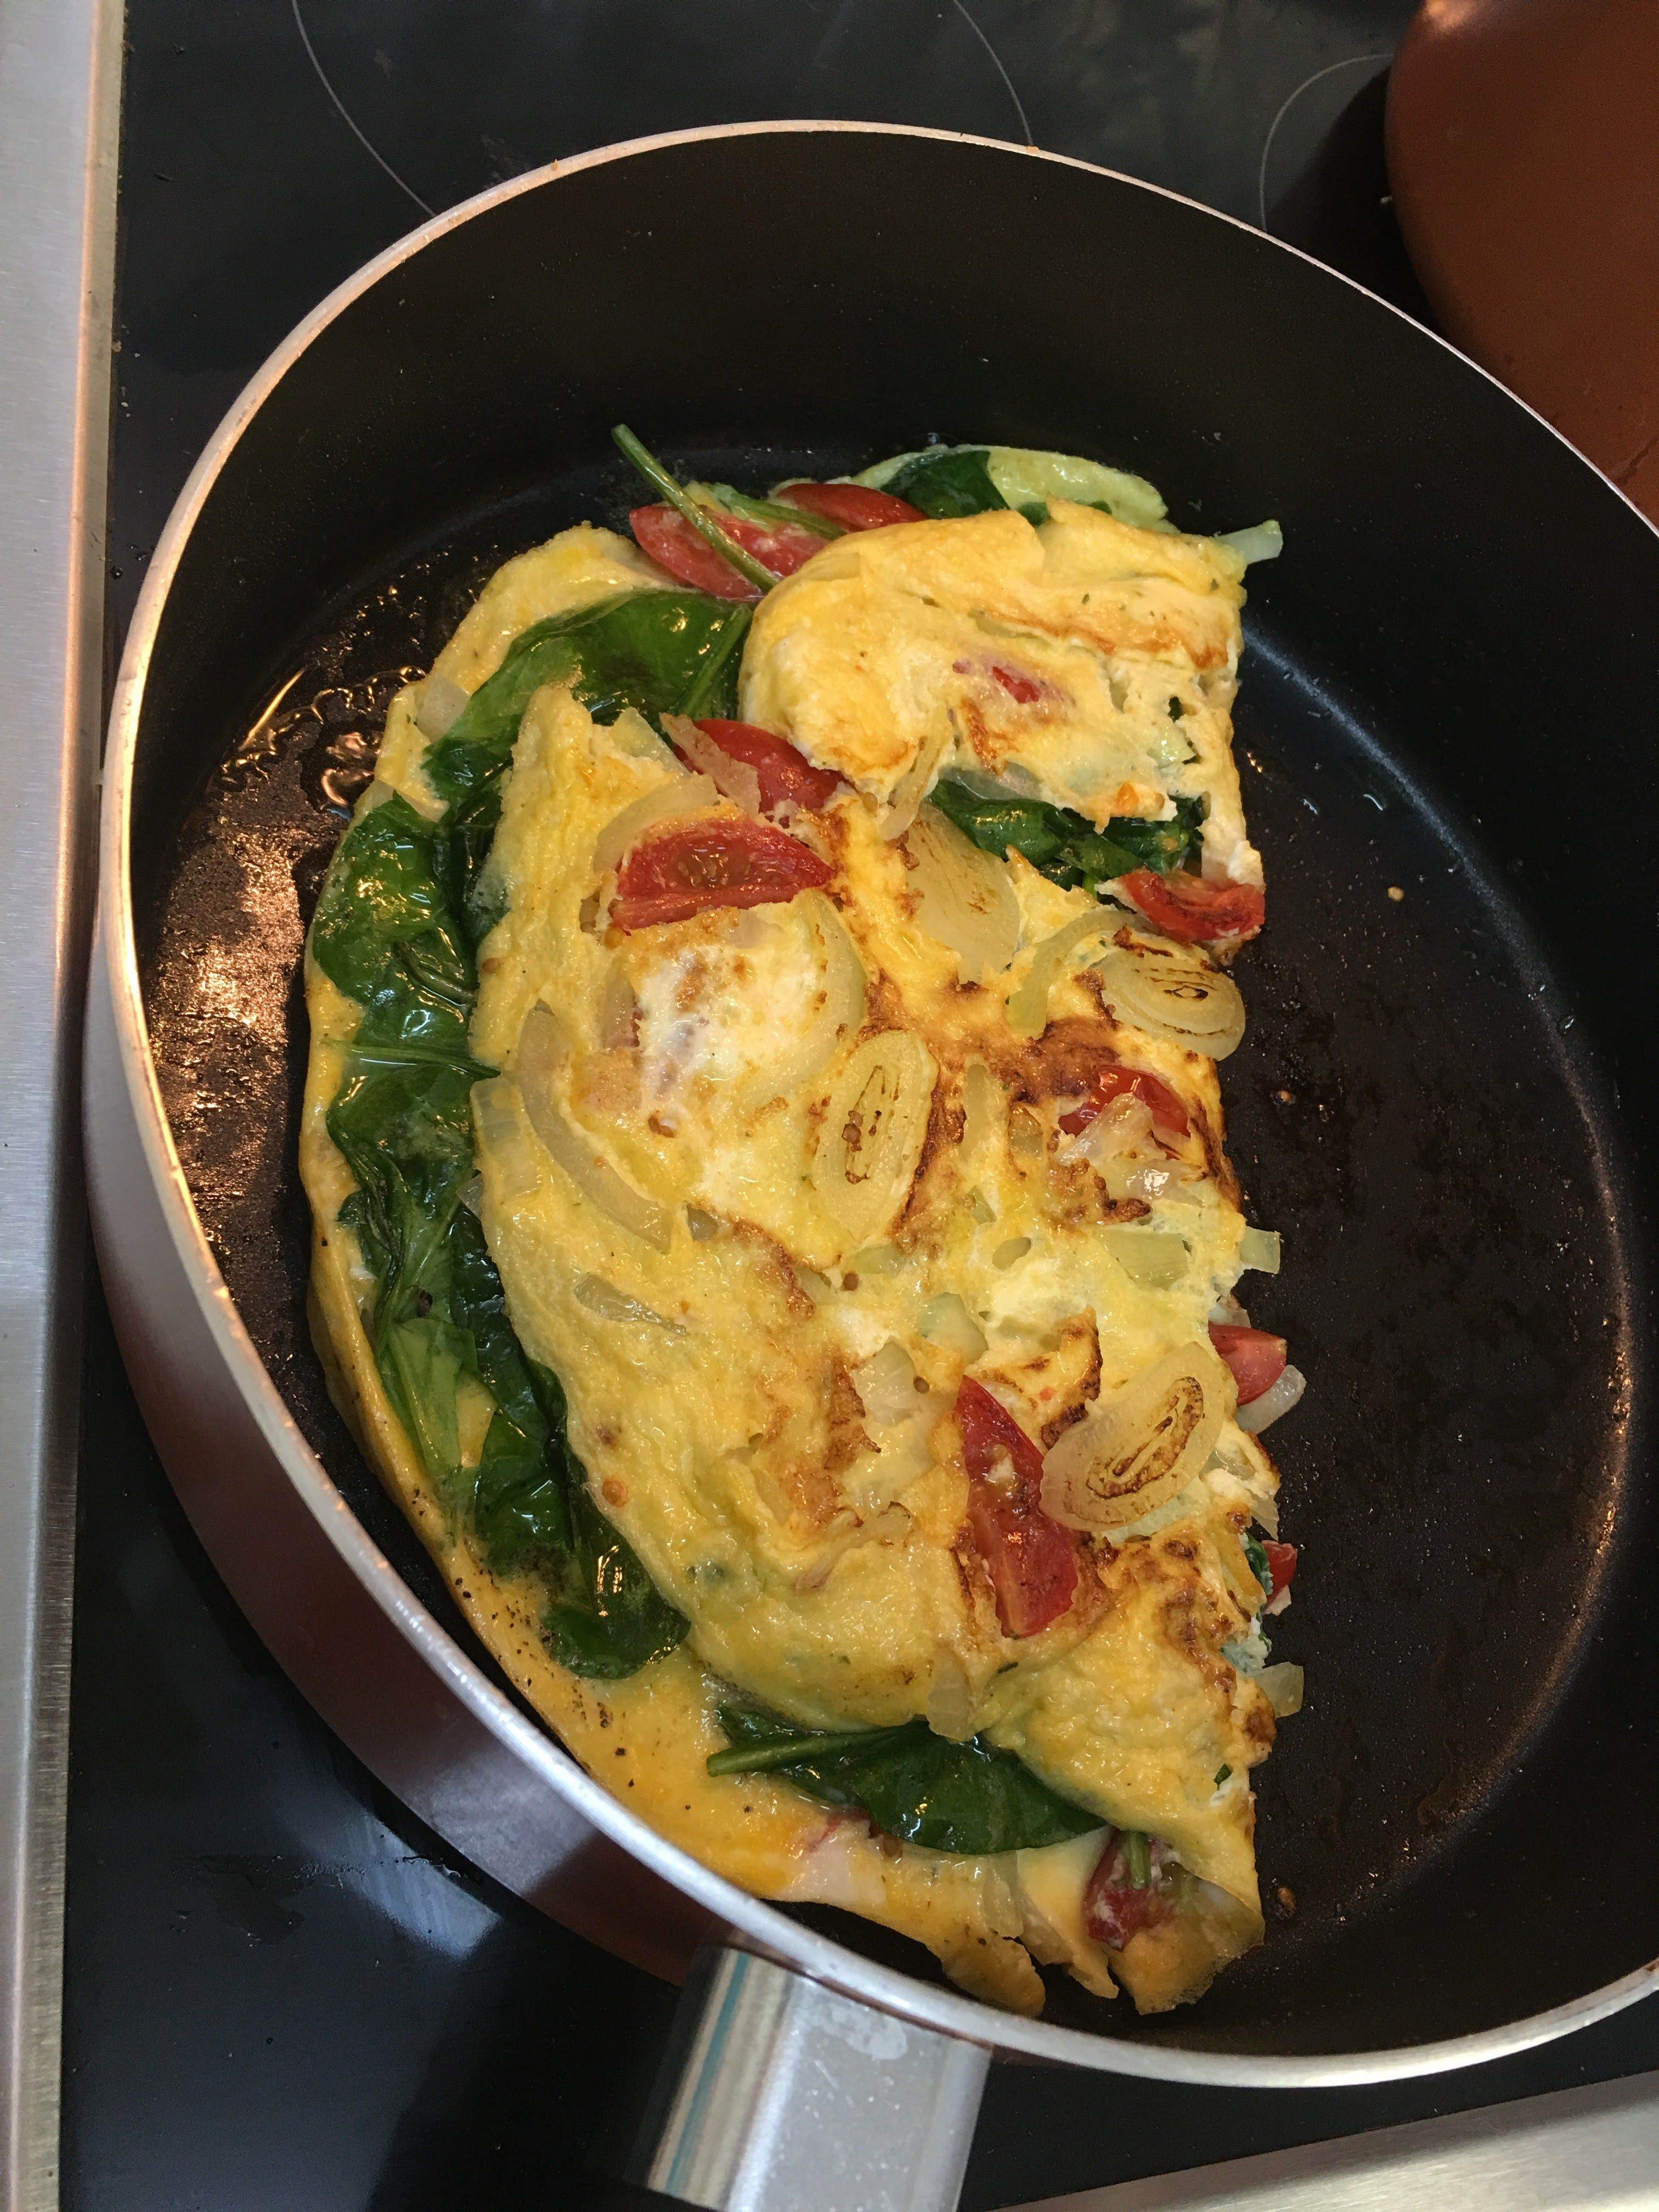 Onion, Tomato and Spinach Omellete ala Mhaj #healthybreaky #hubbysultimatefave